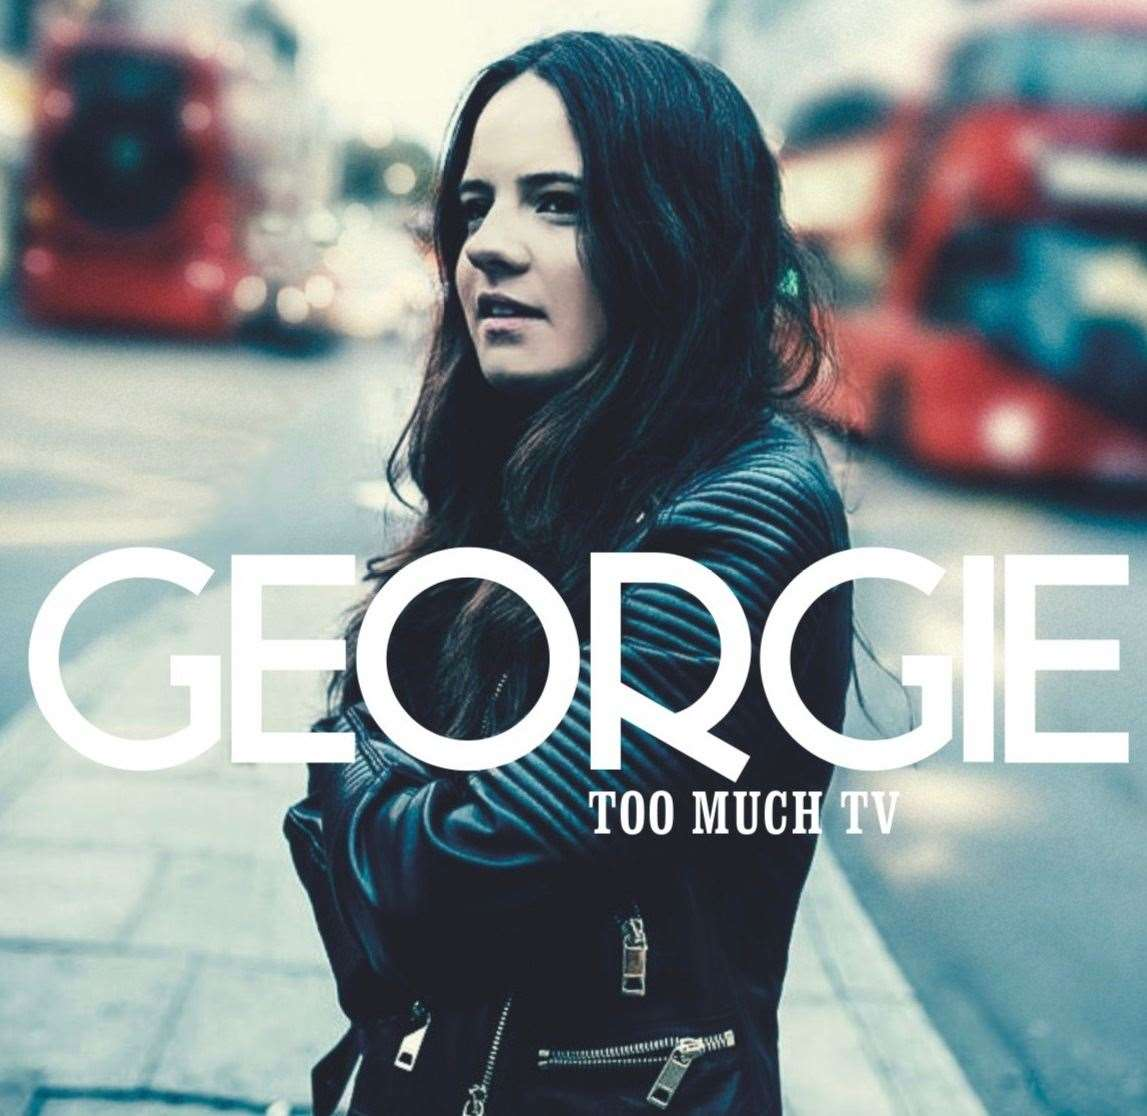 Georgie's debut EP, Too Much TV, was reviewed by Spalding Today in May 2018. (7616005)